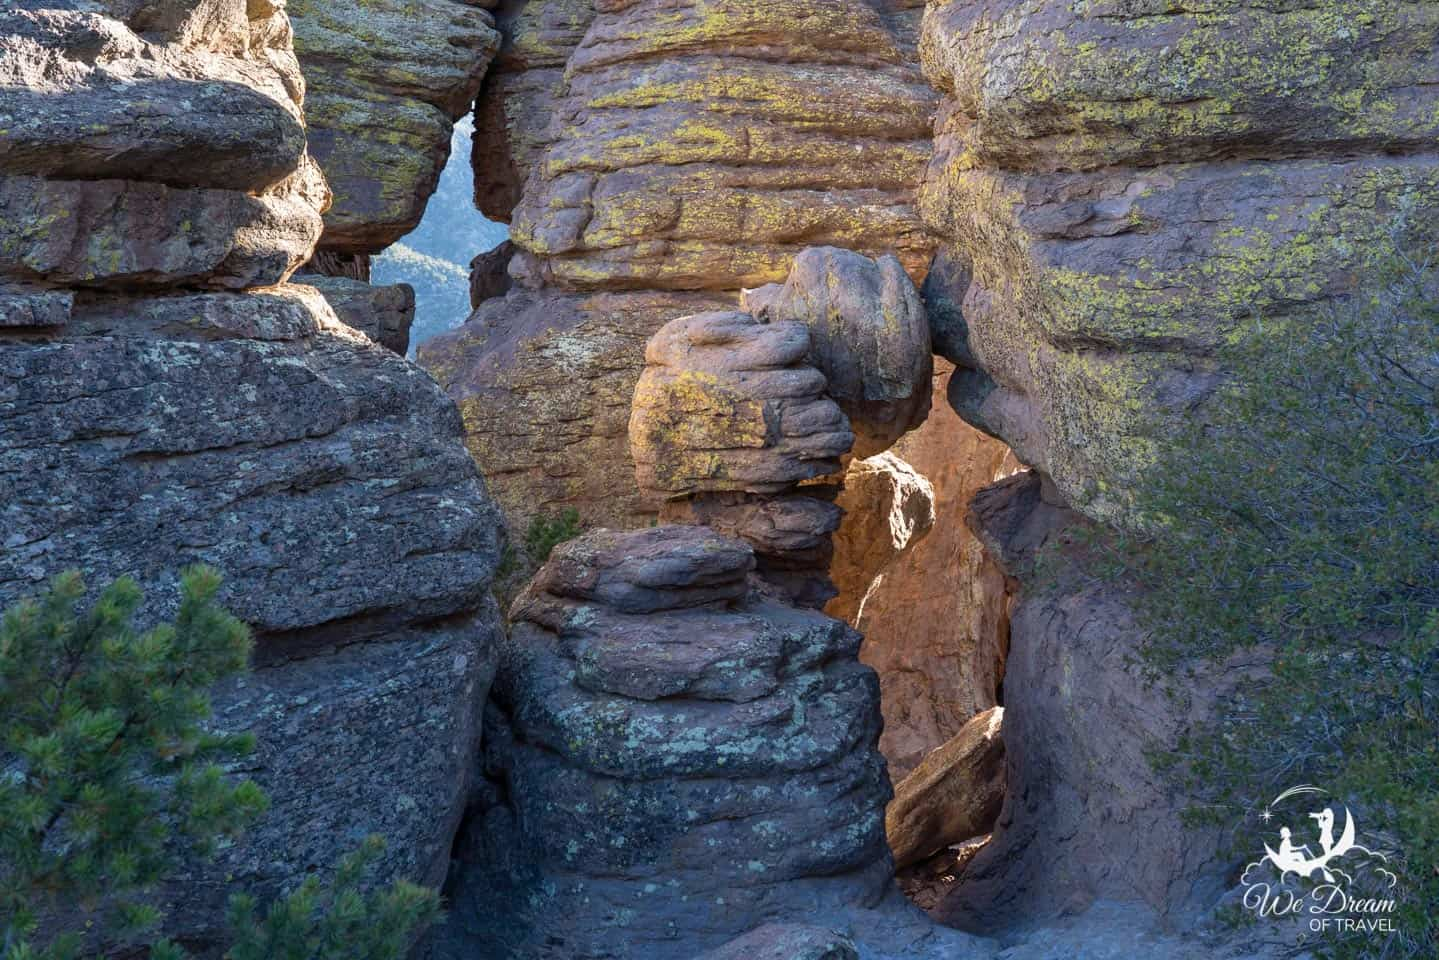 A view of The Grottoes of Chiricahua NM.